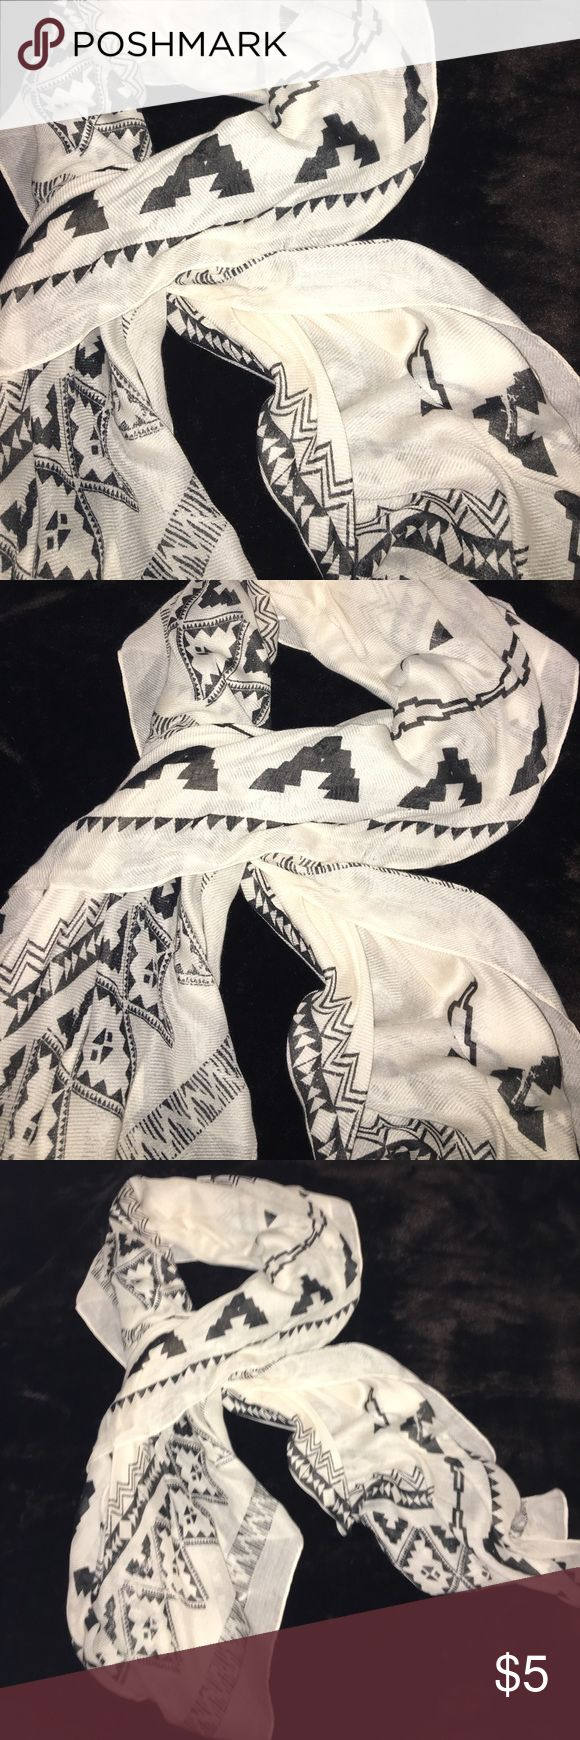 Forever 21 Aztec scarf Pretty Aztec designs. Never worn. Cute paired with any outfit in all seasons. Forever 21 Accessories Scarves & Wraps